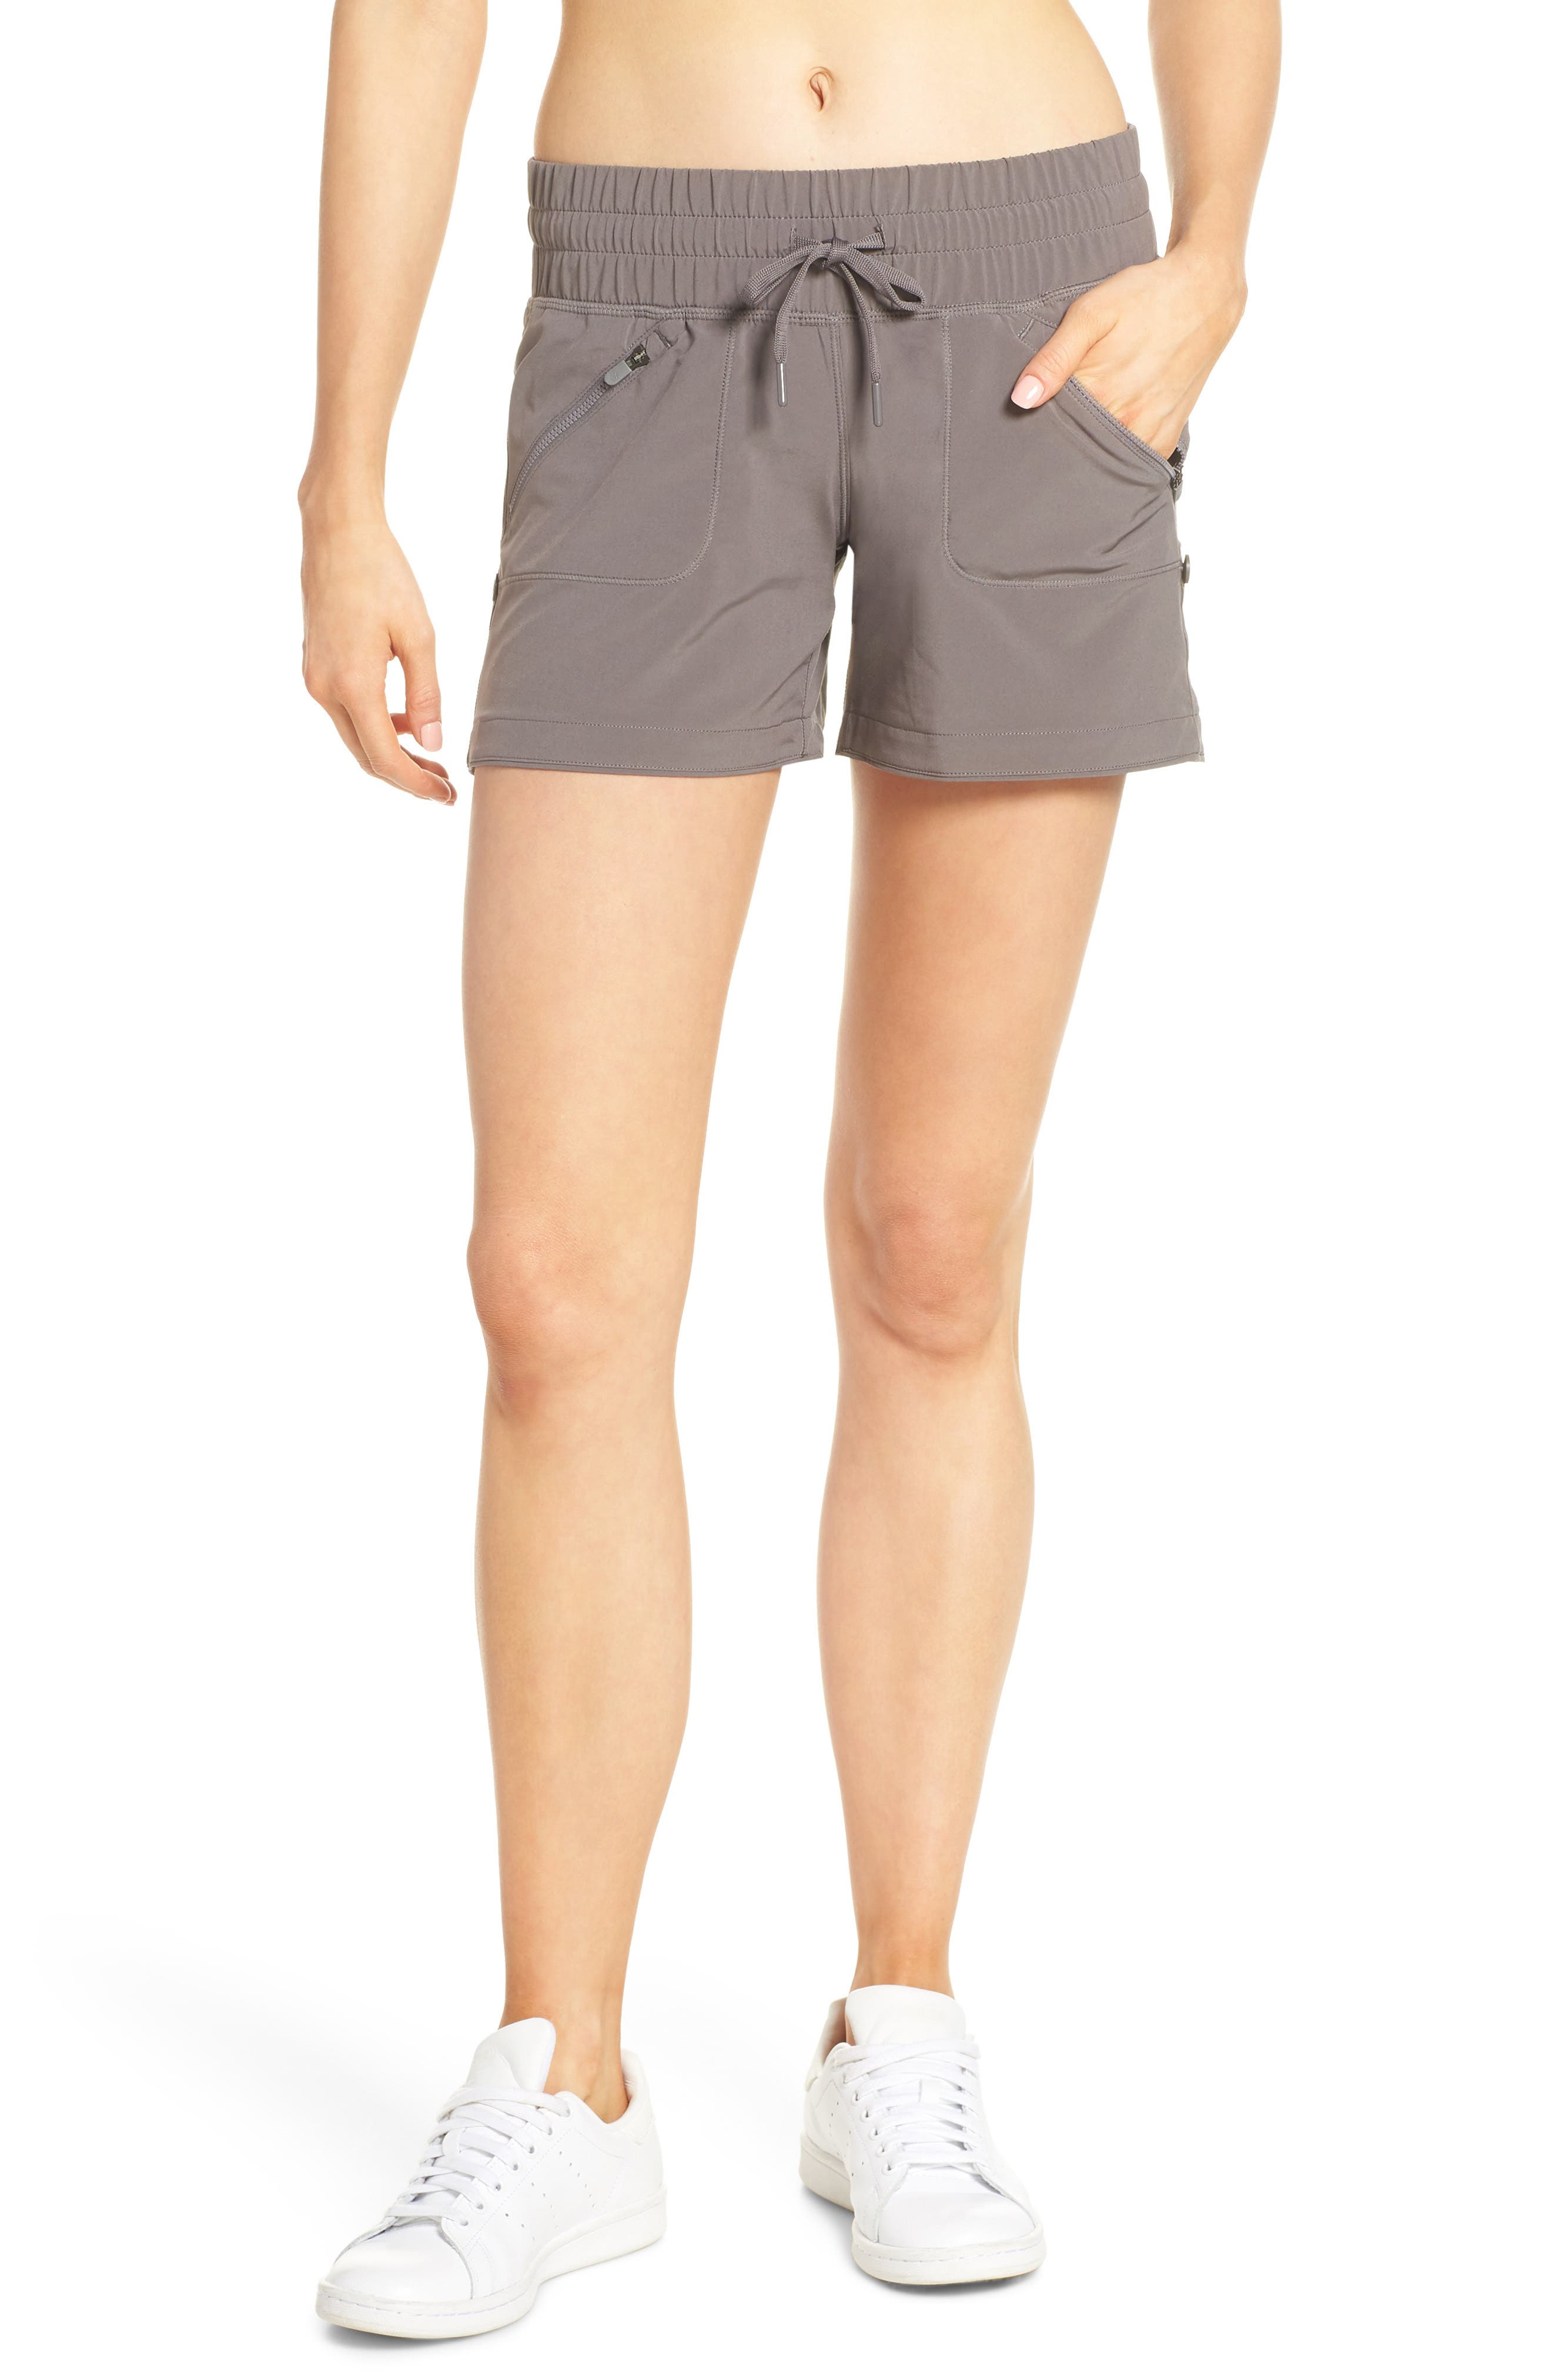 ZELLA Switchback Shorts, Main, color, GREY KITTEN